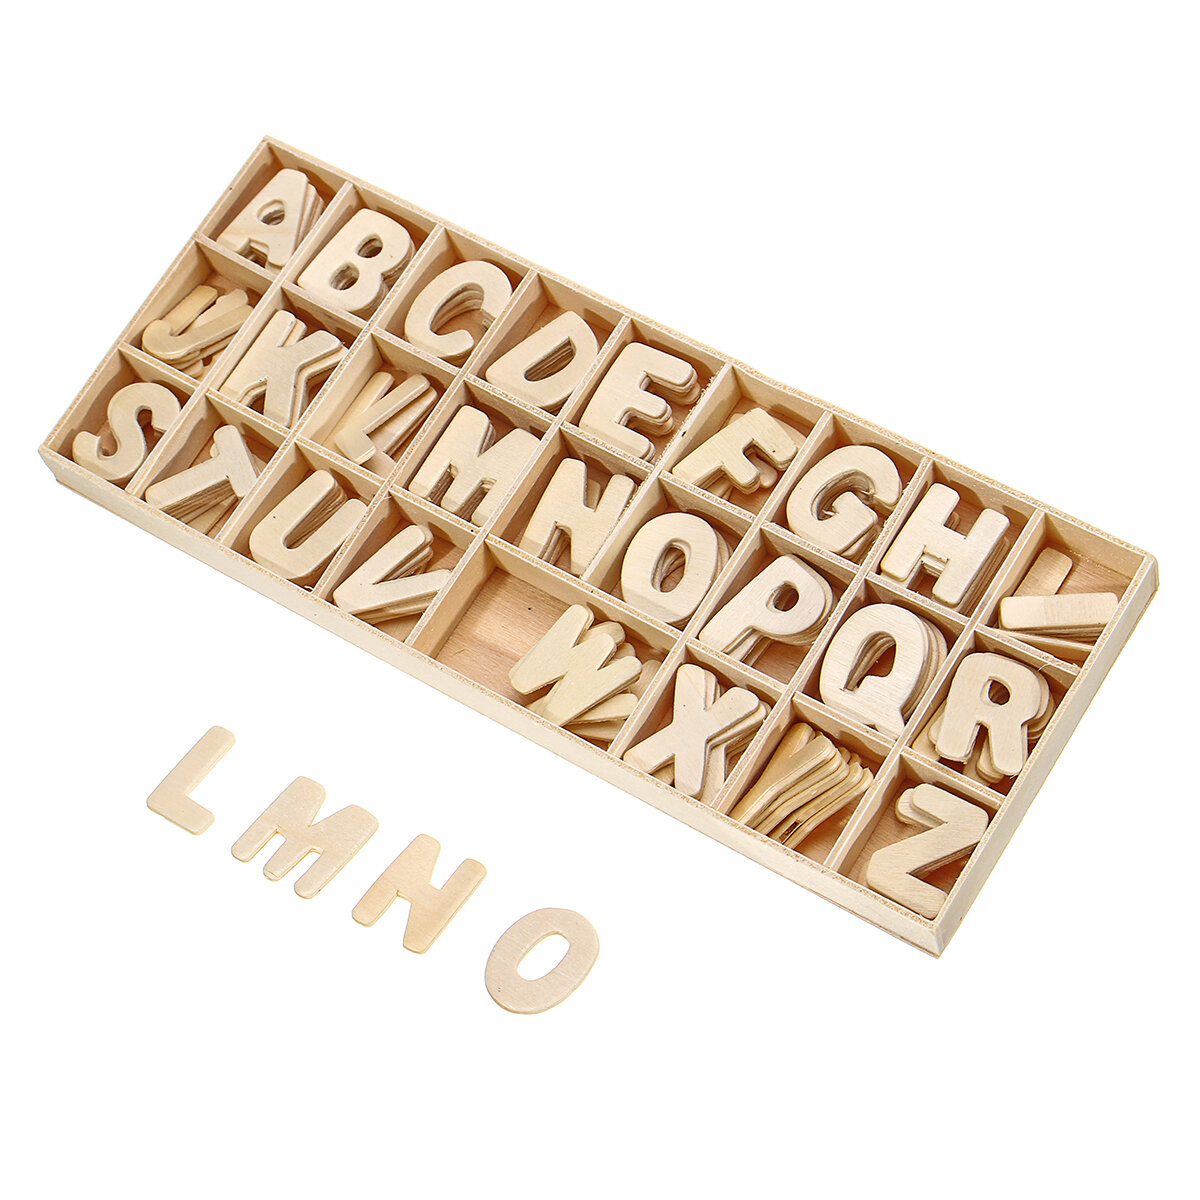 156X Wooden Scrabble Tiles Letters Puzzle Blocks Crafts Wood Alphabet Kids Early Education Toys Gift - 3